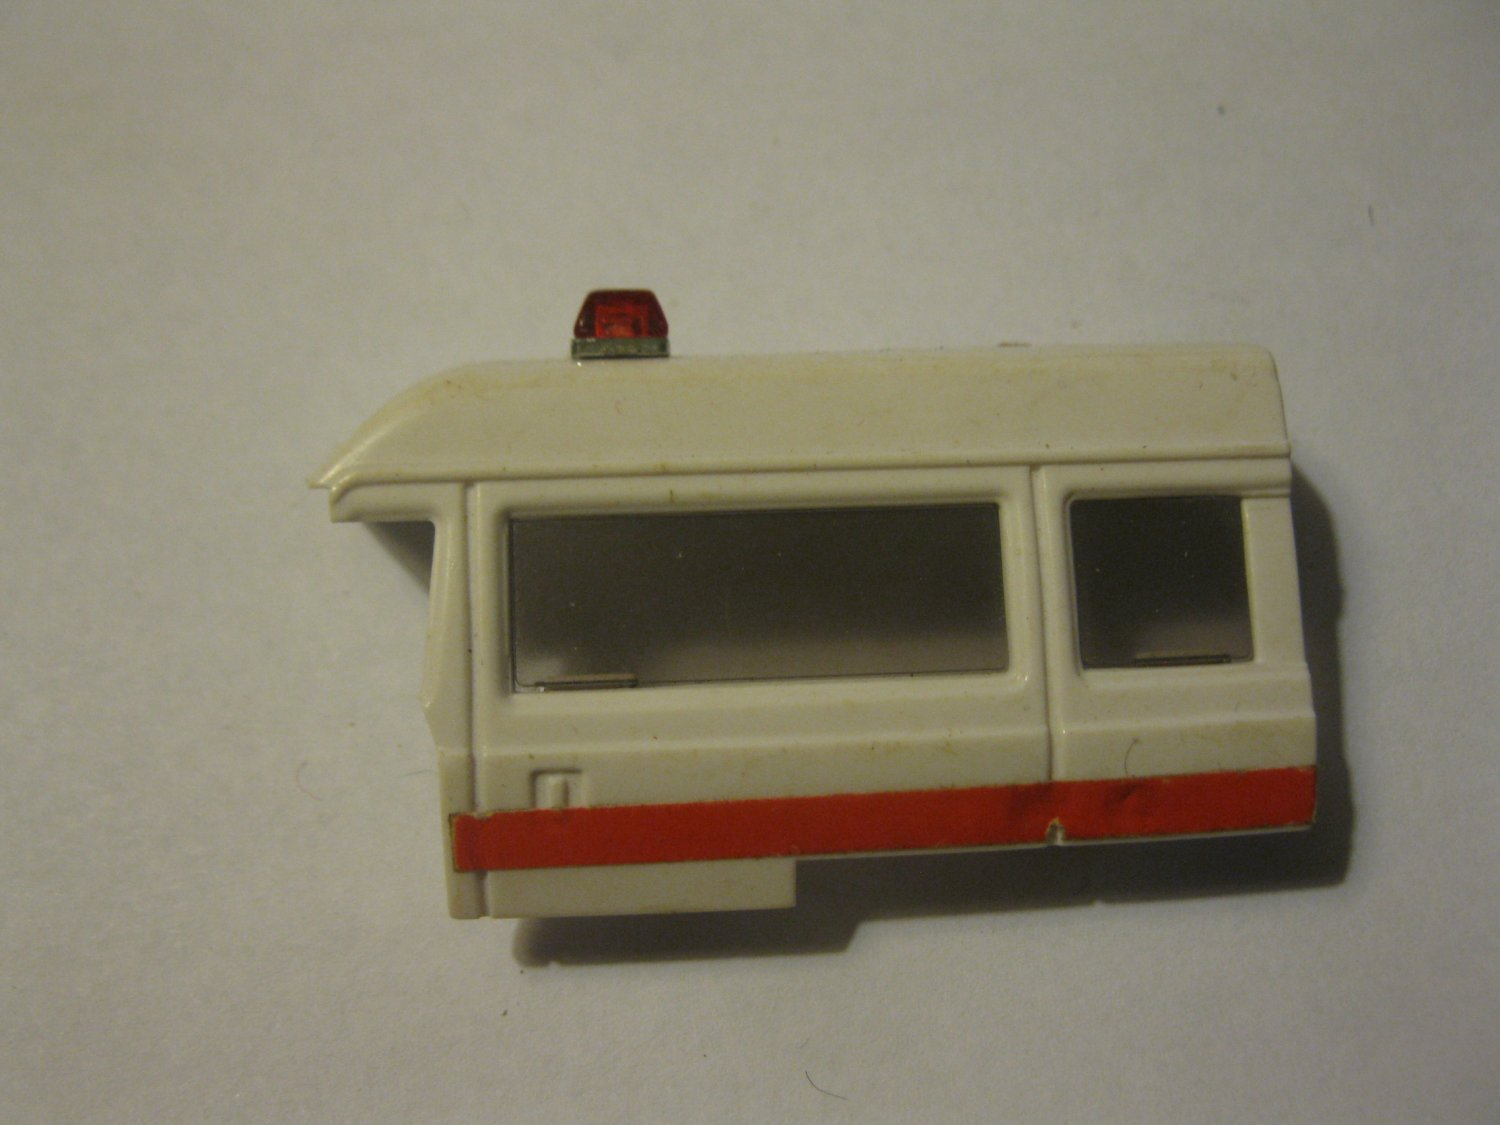 G1 Transformers Action figure part: 1984 Ratchet - Ambulance rear left side